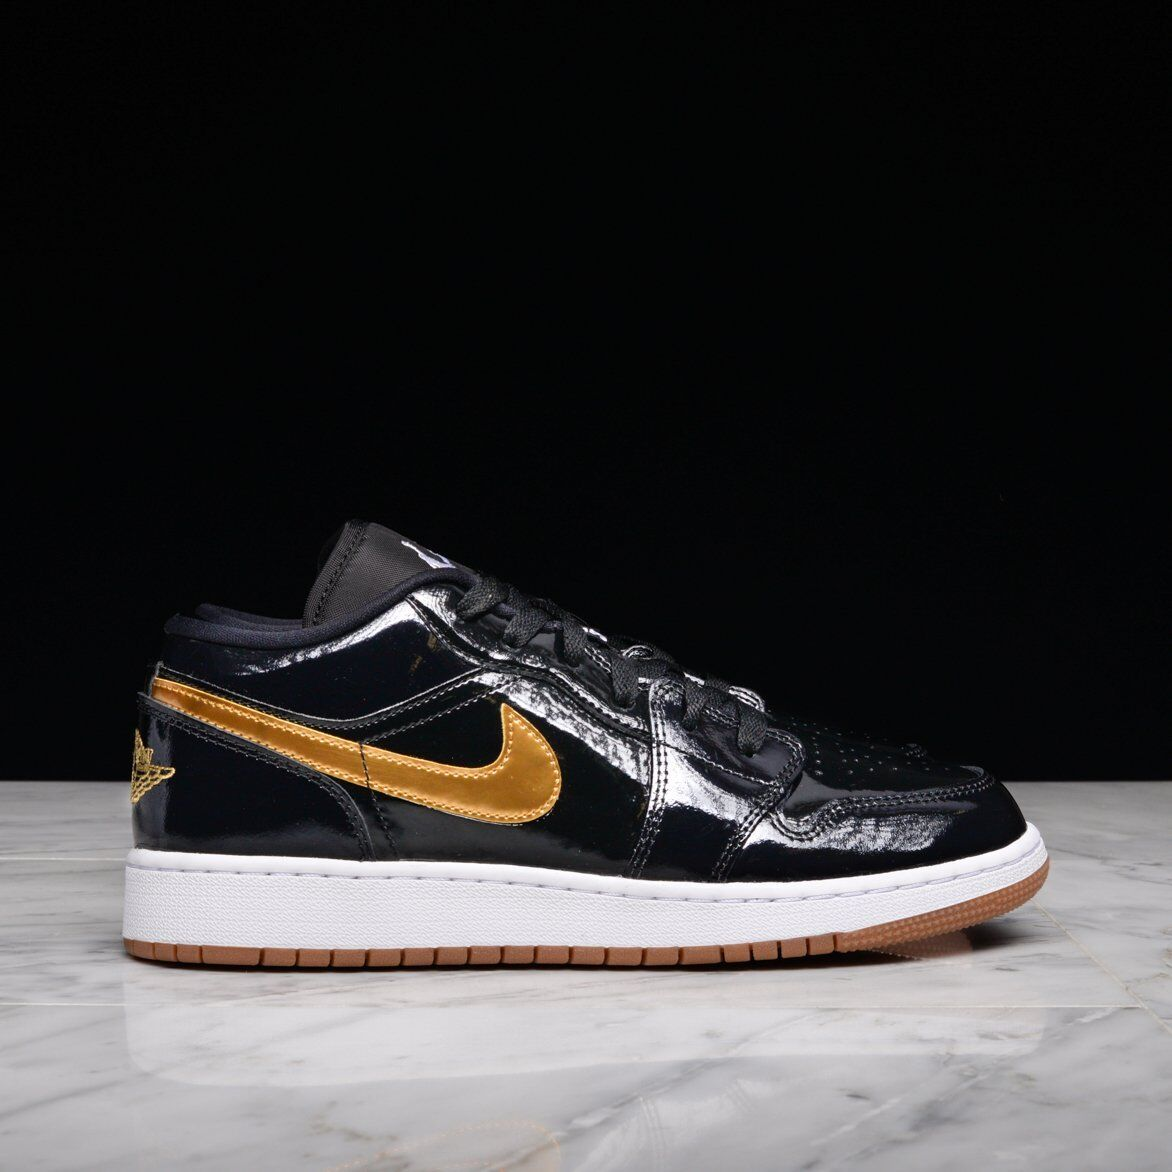 detailed look 9cd94 0f156 ... new zealand nike air jordan 1 retro low og negro metallic reduccion oro  goma charol blanco